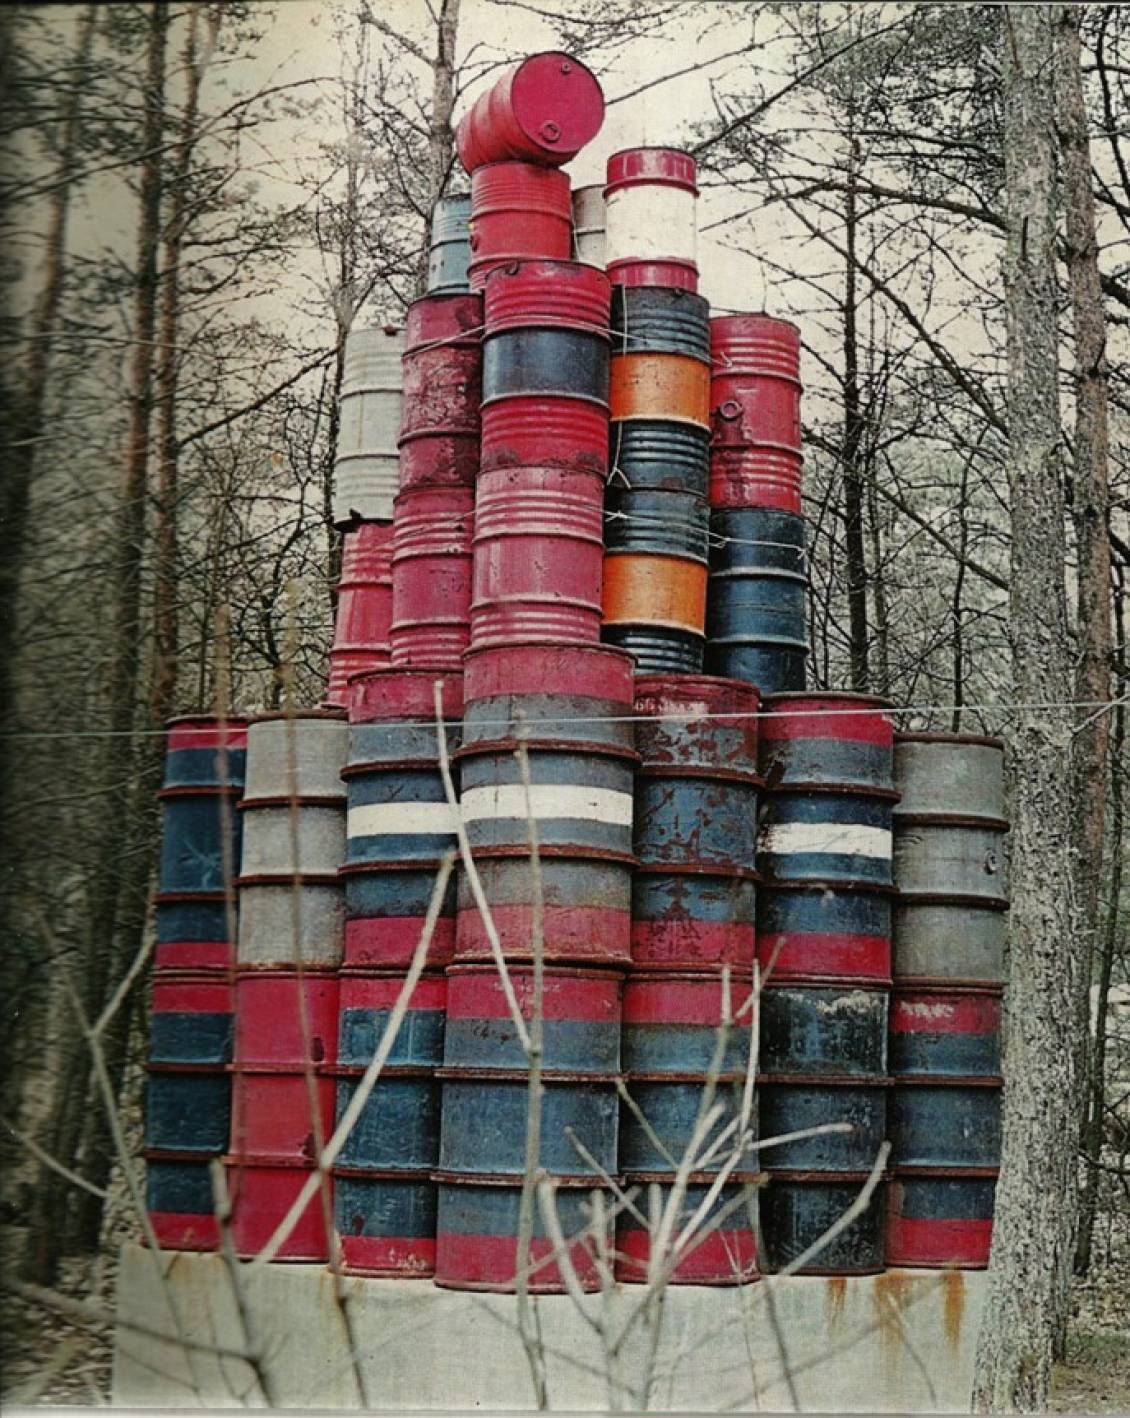 The original version of Christo's '56 Barrels', 1968